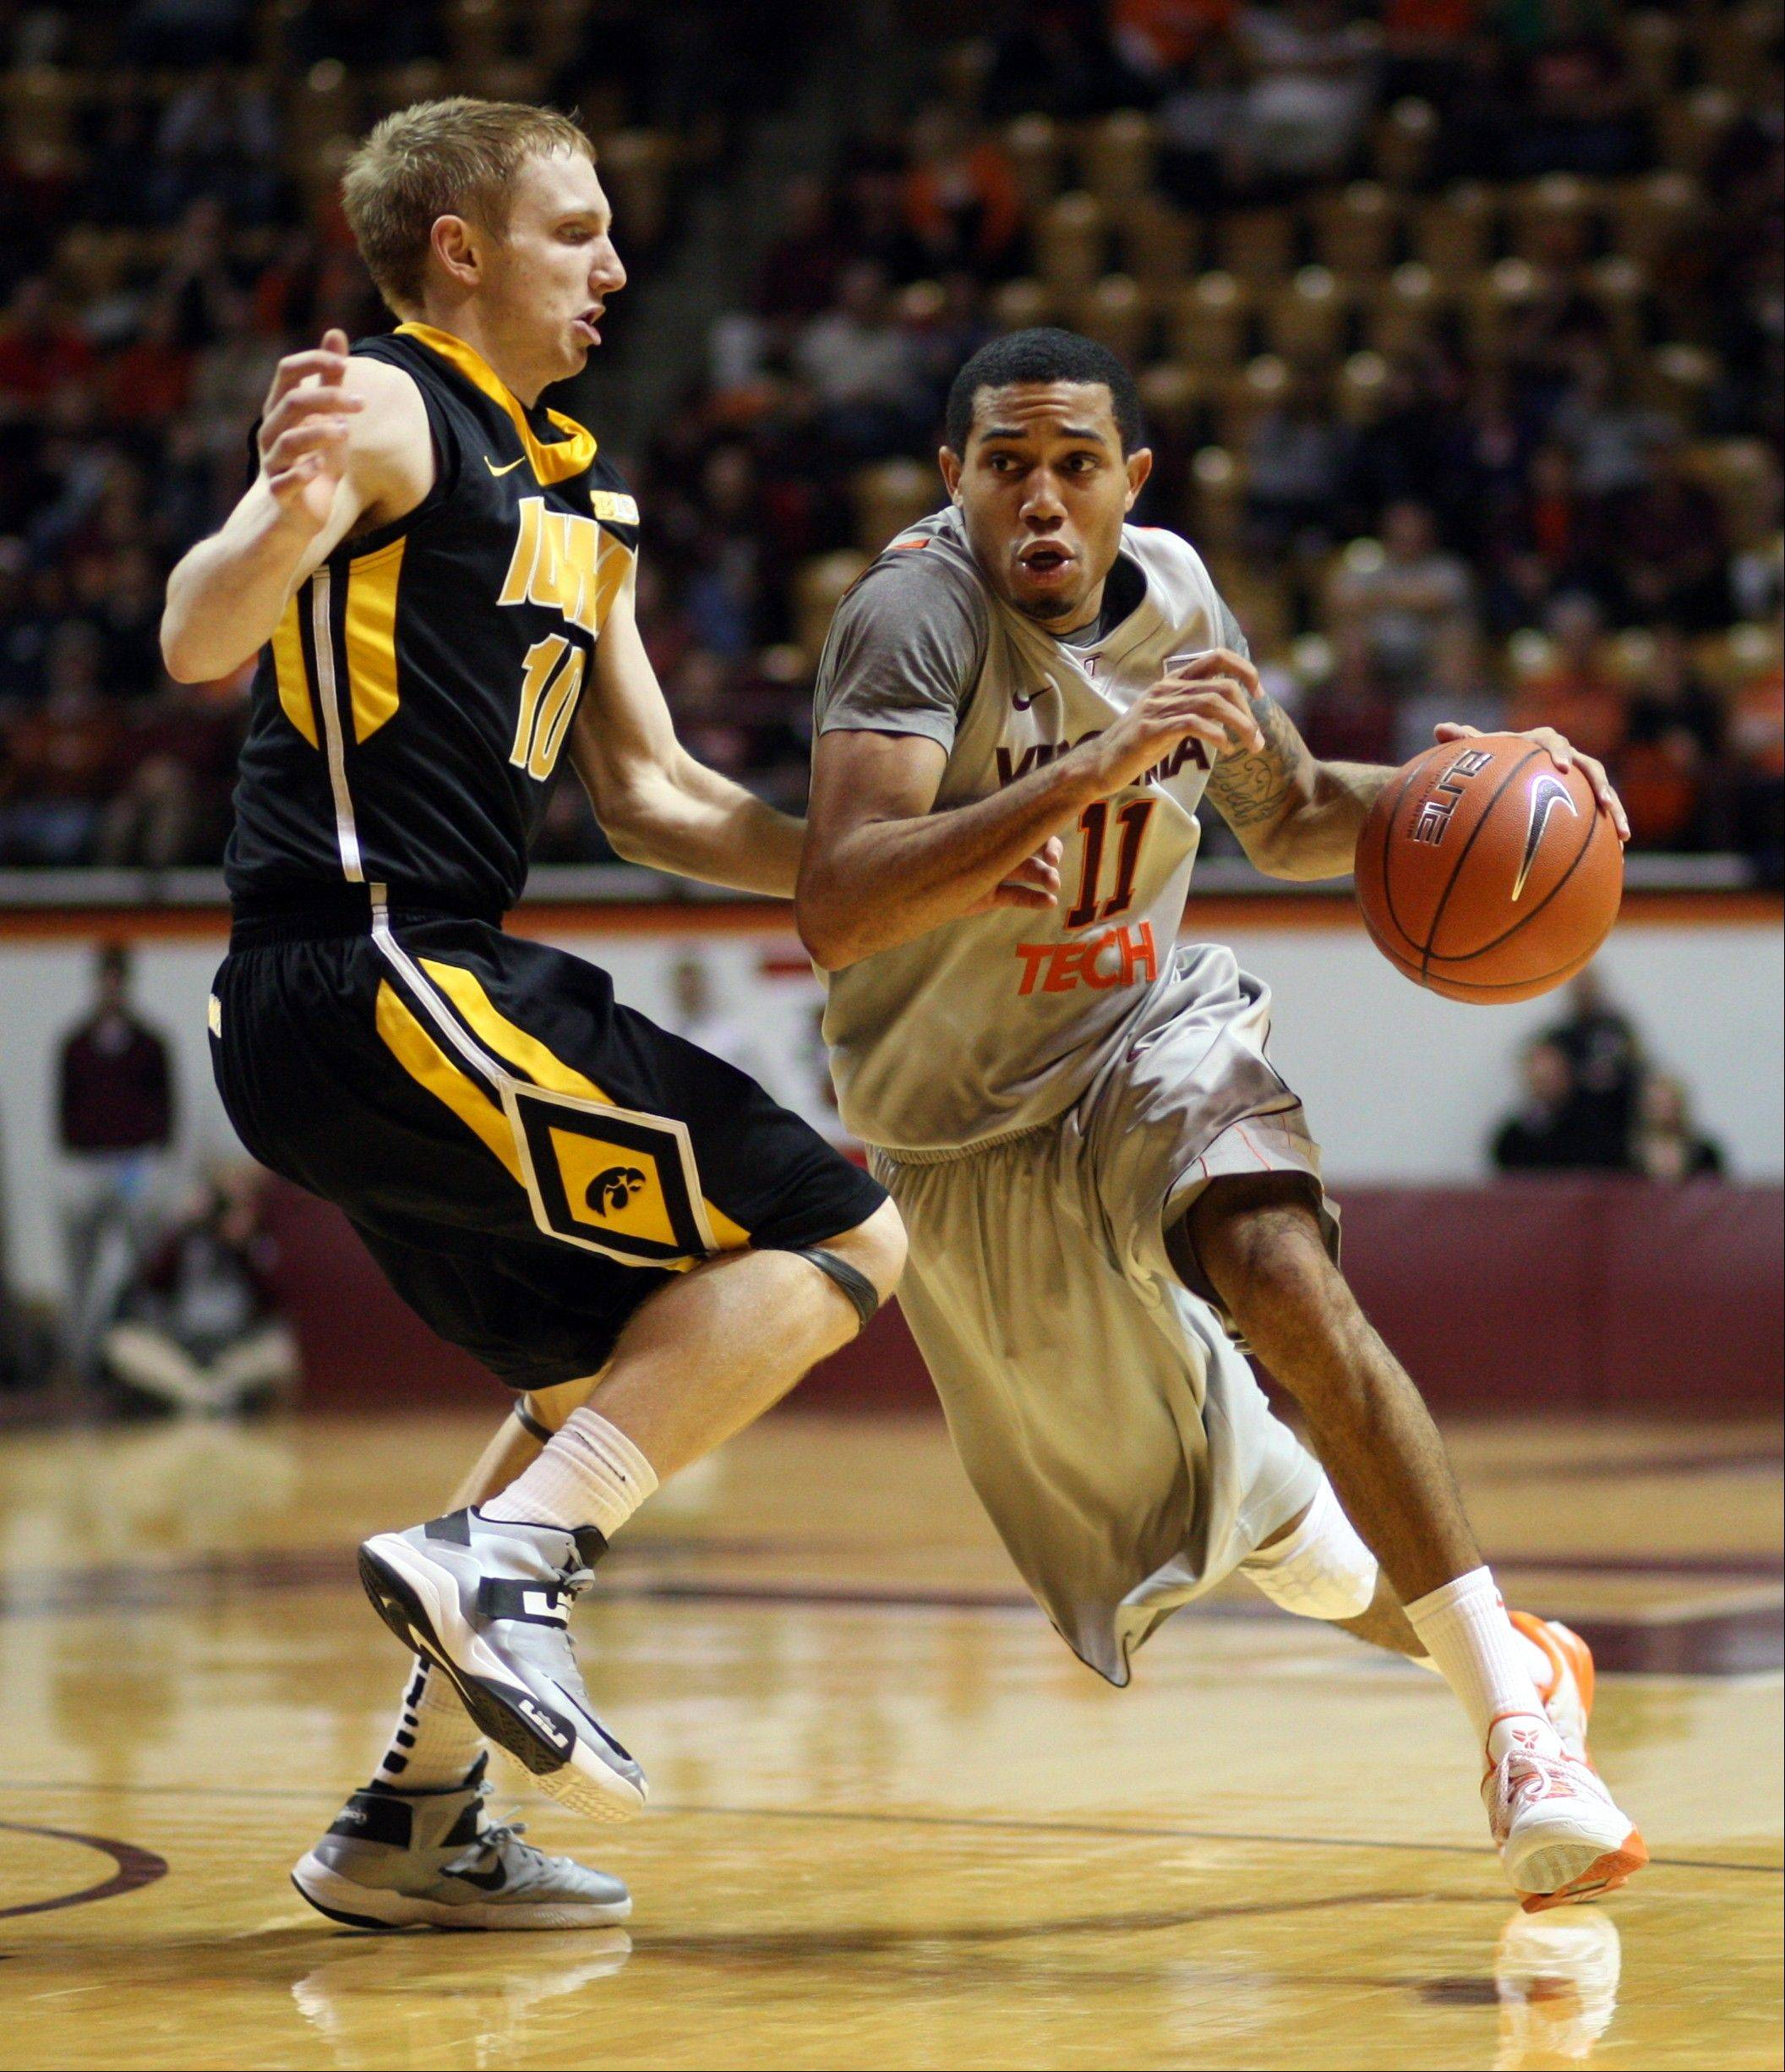 Virginia Tech's Erick Green goes around Iowa's Mike Gesell into the lane Tuesday in Blackburg, Va.